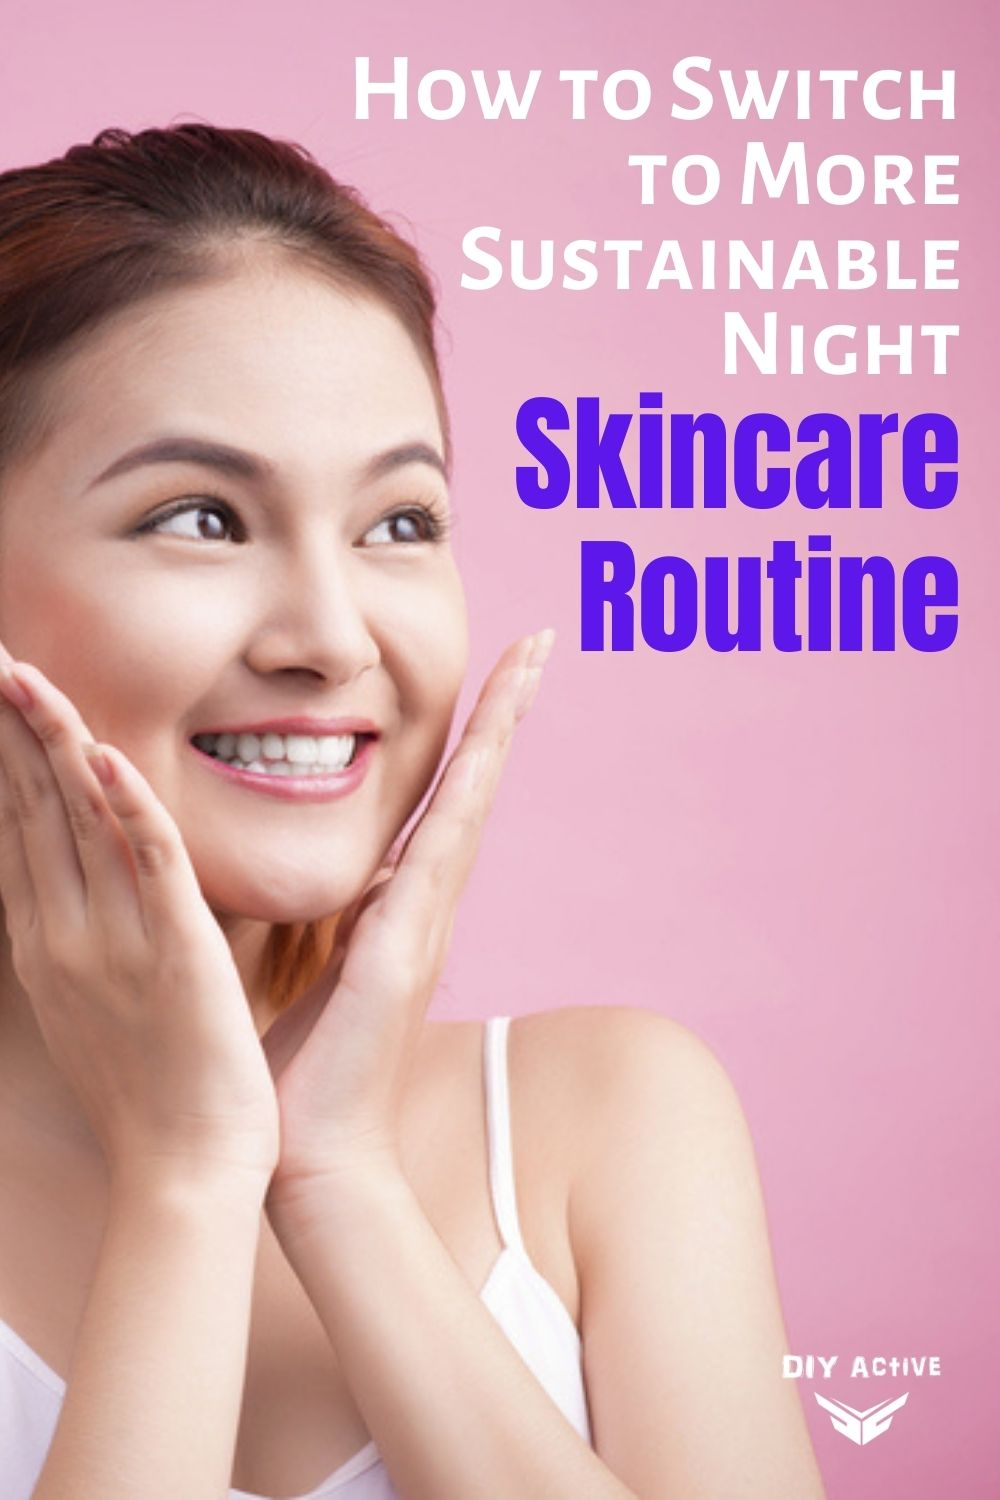 How to Switch to More Sustainable Night Skincare Routine